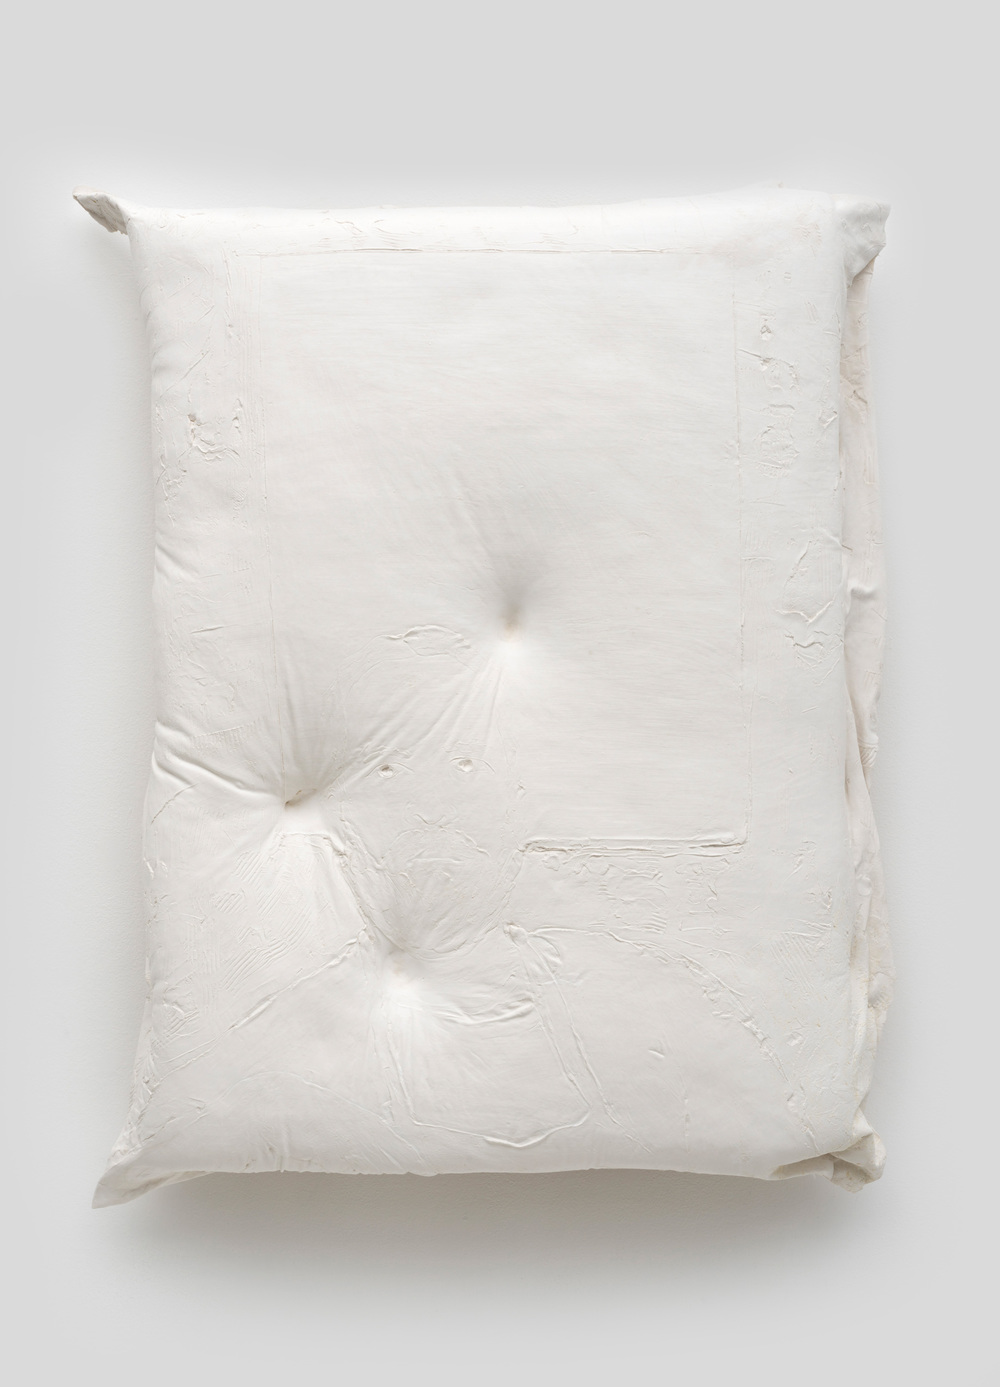 Untitled , 2014 Gypsum cement, fiberglass cloth, and wood 34 x 30 x 8 inches